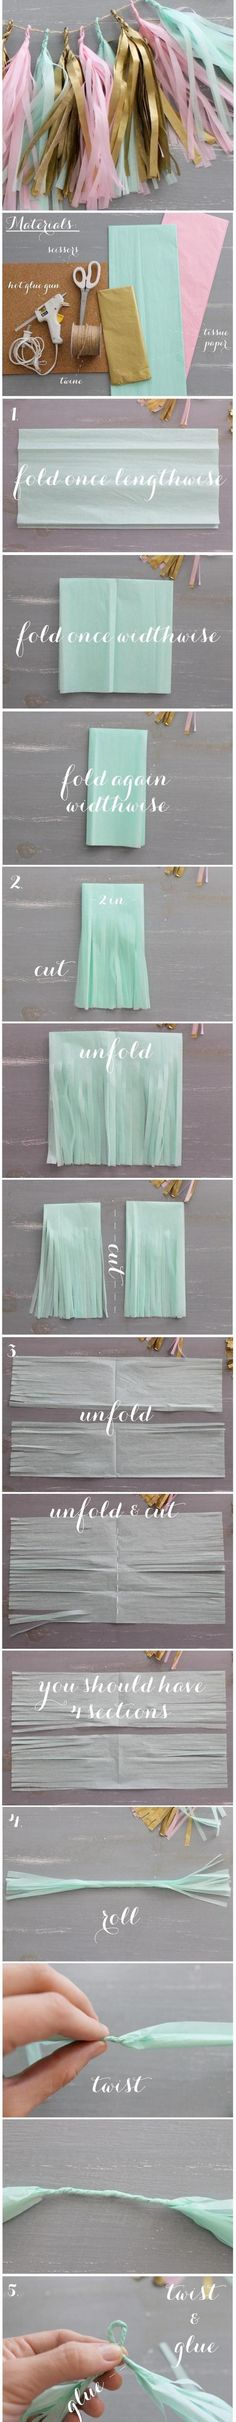 How to make tassel garland- perfect for a celebration & easy to make! #party